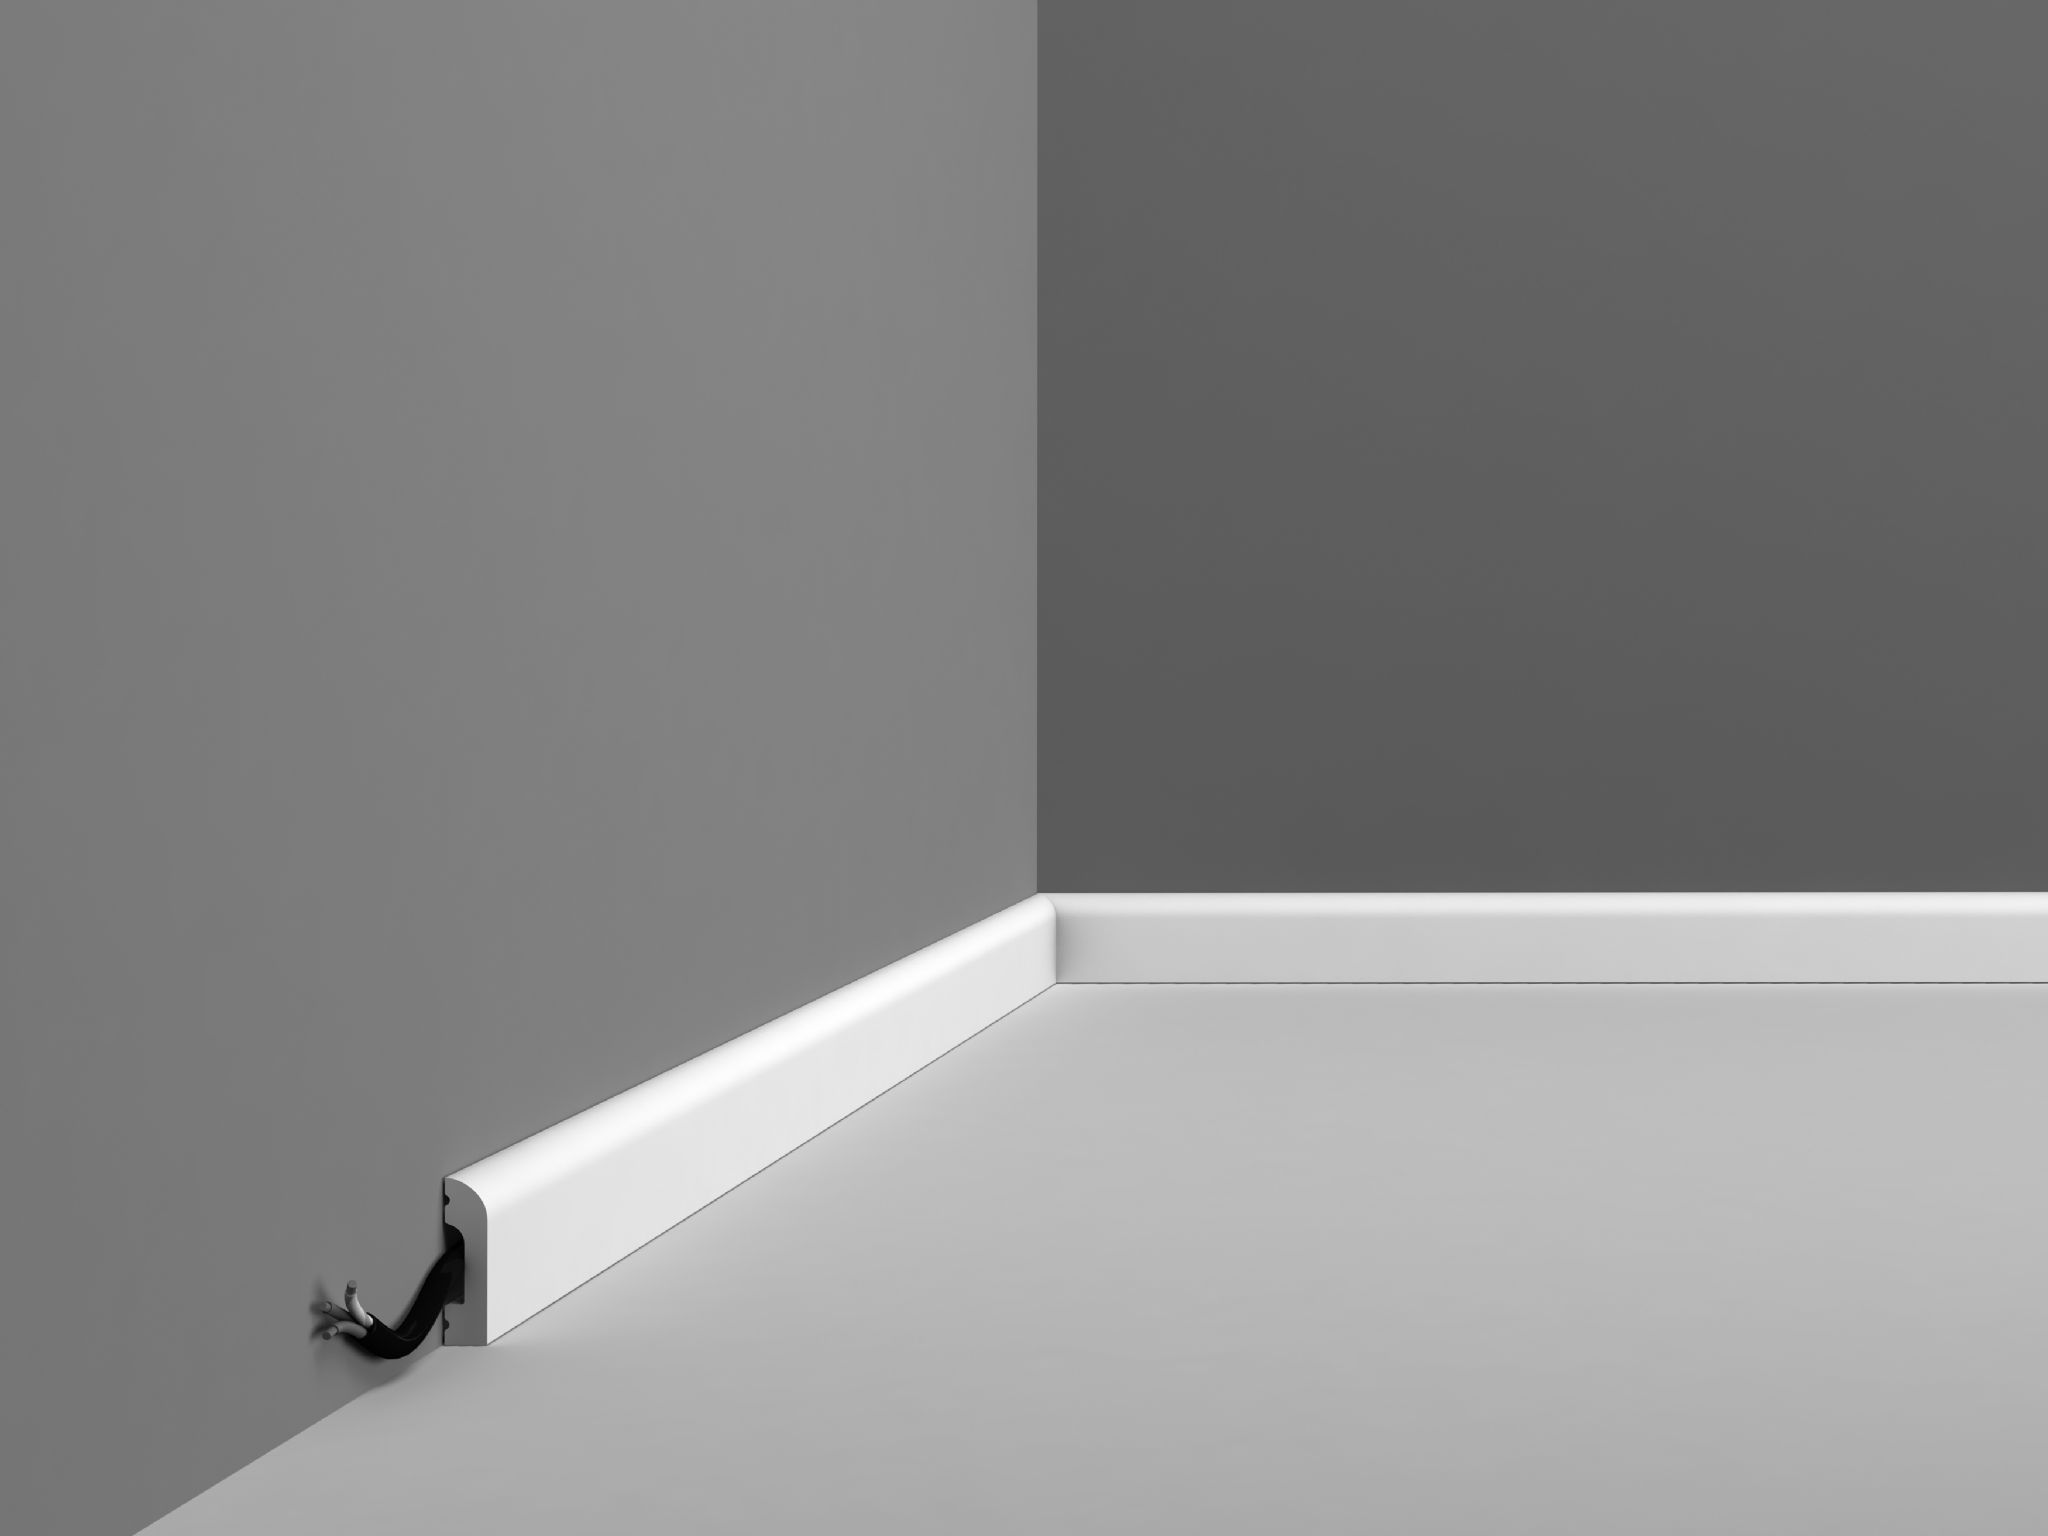 dx182 small contemporary skirting wm boyle interior finishes